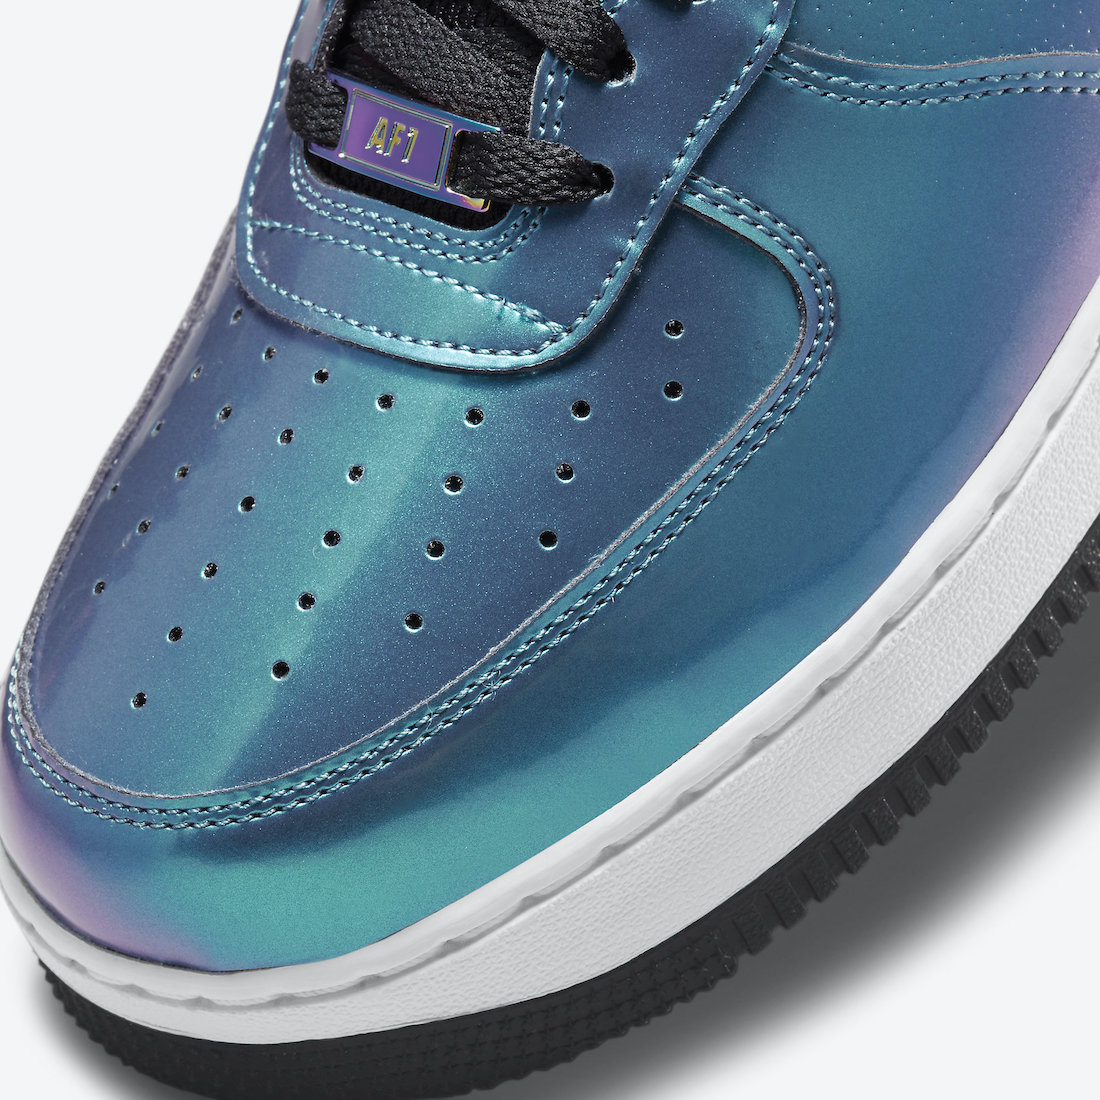 Nike Air Force 1 Low Iridescent DQ6037-001 Release Date